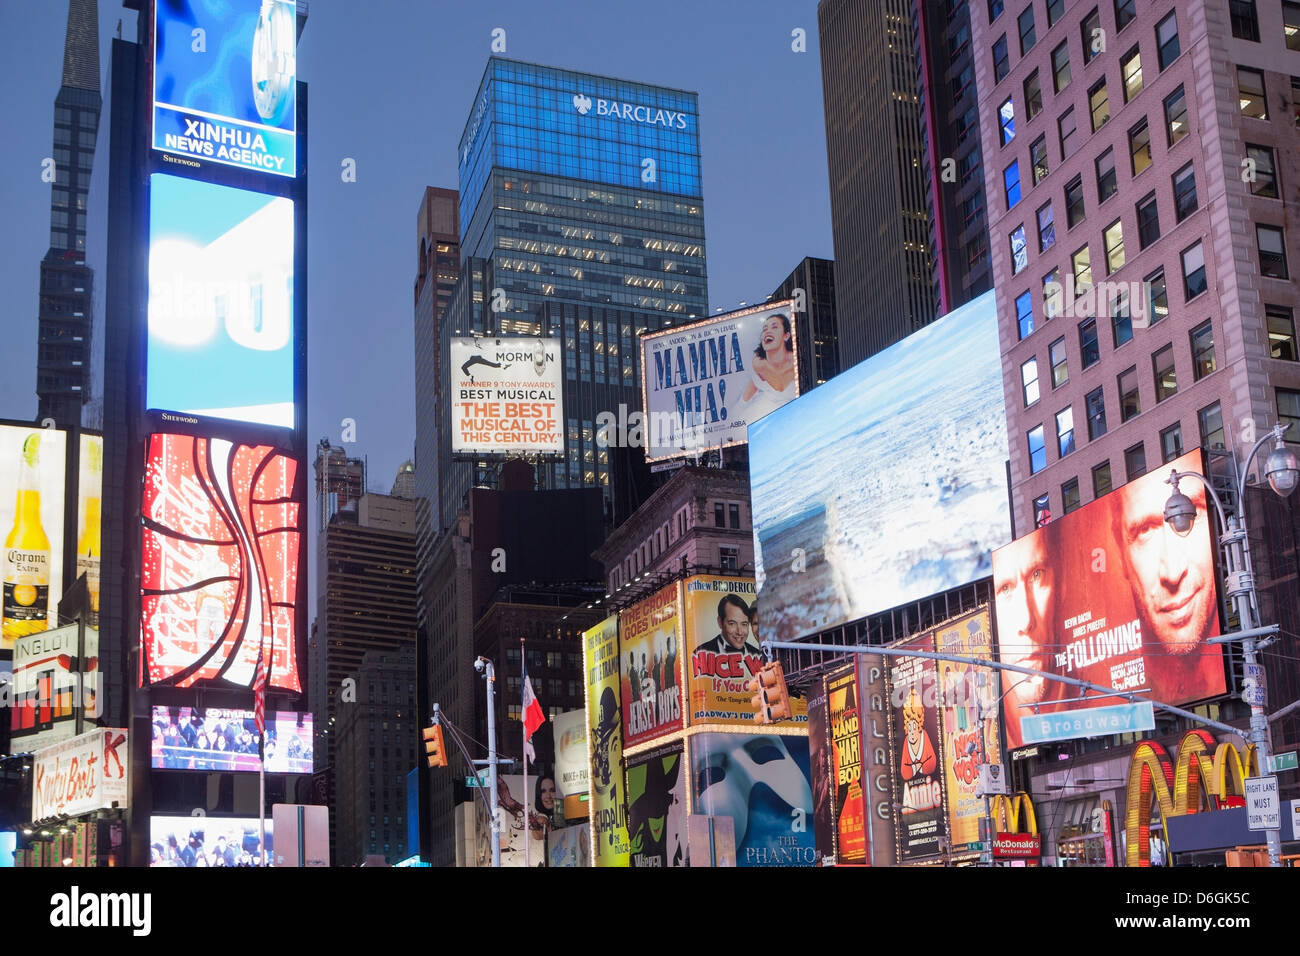 Illuminated billboards in Times Square - Stock Image